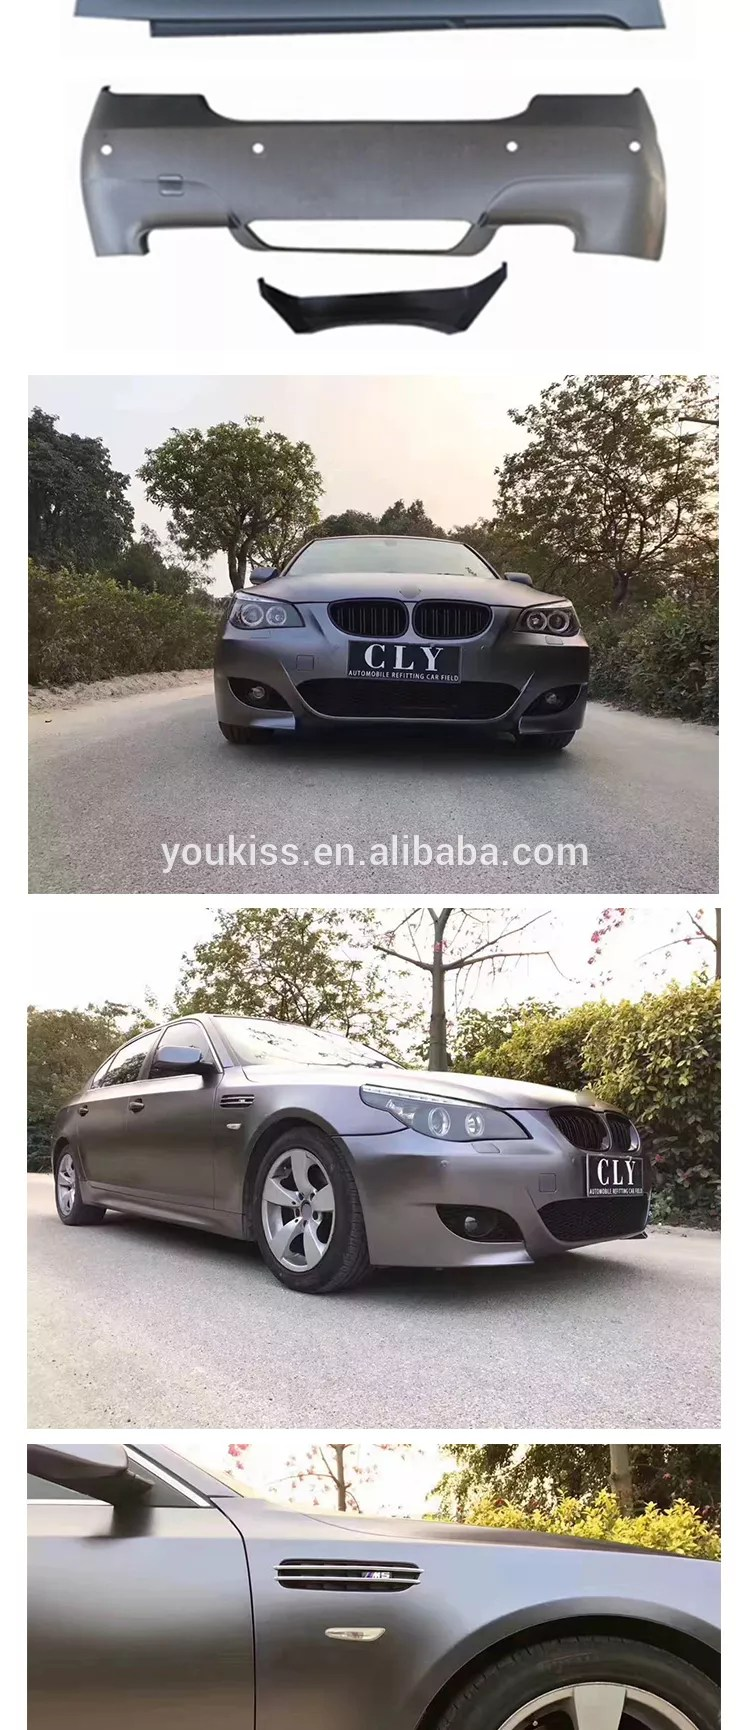 2008 Bmw 535i Body Kit : Style, Material, Series, E60,For, Product, Alibaba.com